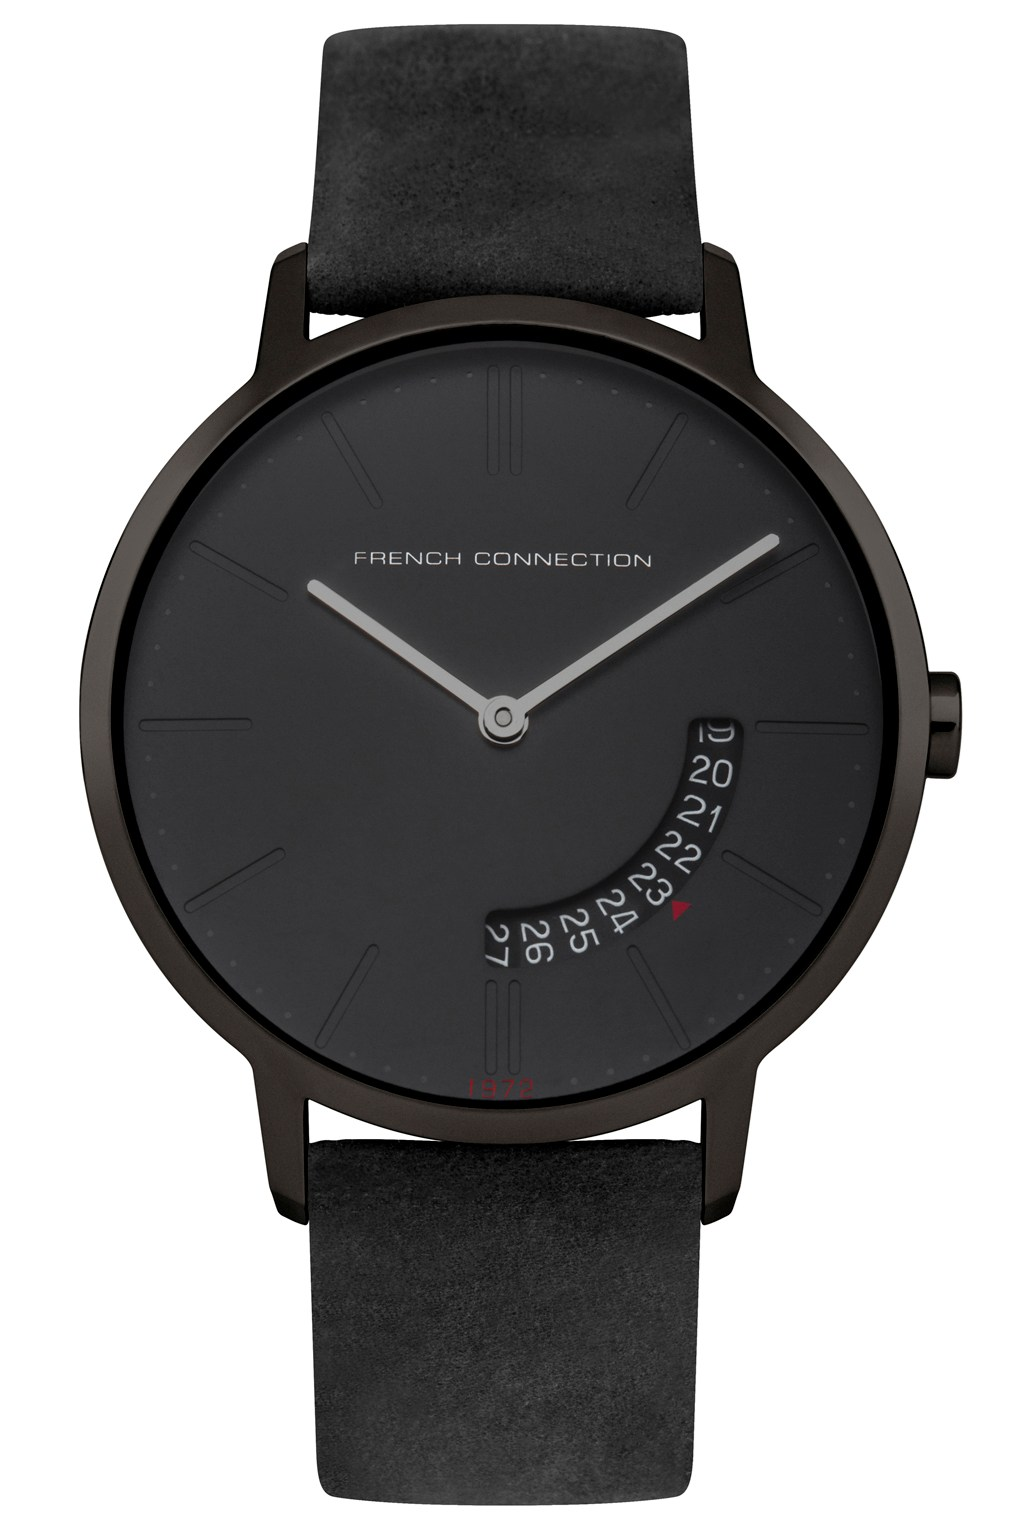 39MM Black Leather Strap Watch | Mens Accessories